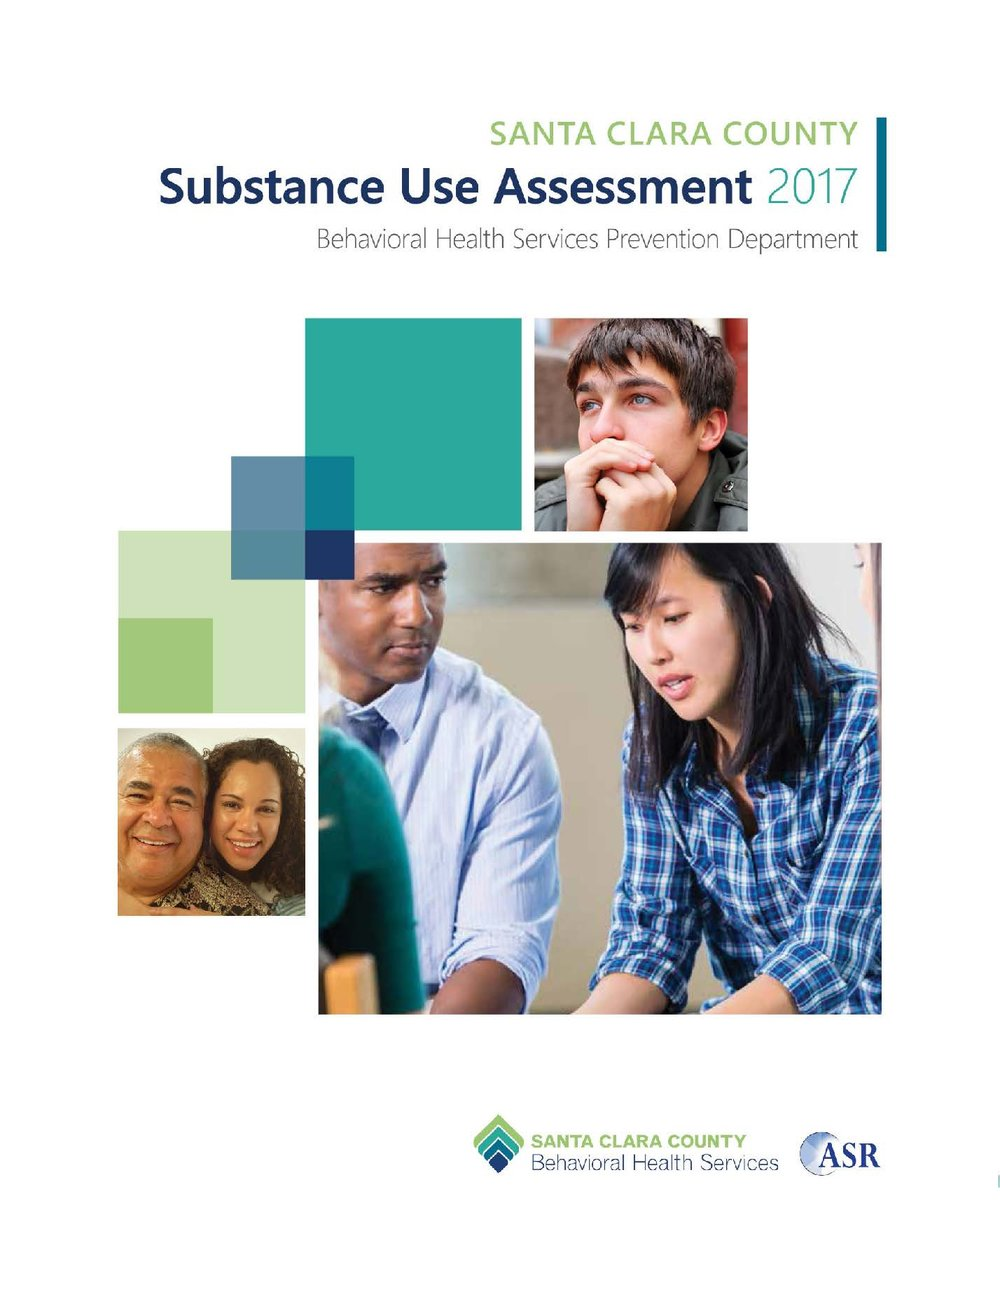 Santa Clara County Substance Use Assessment